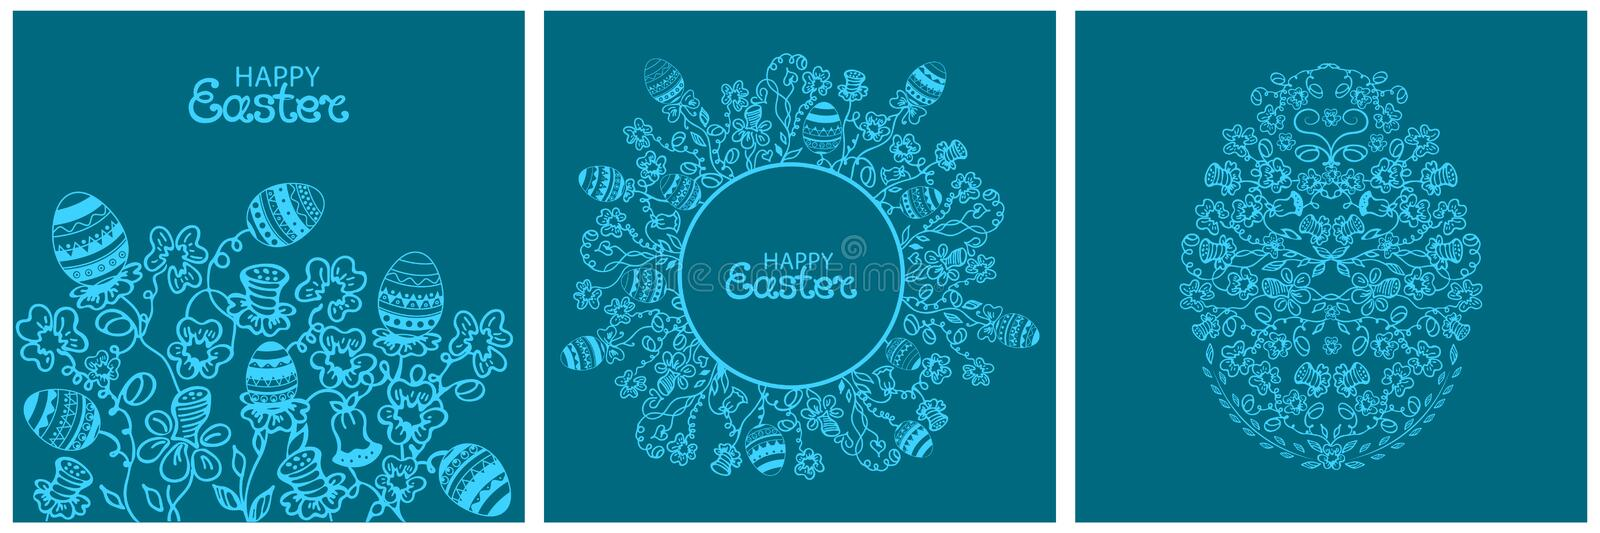 Happy Easter card flowers and paschal eggs. Round floral frame in doodle style royalty free illustration